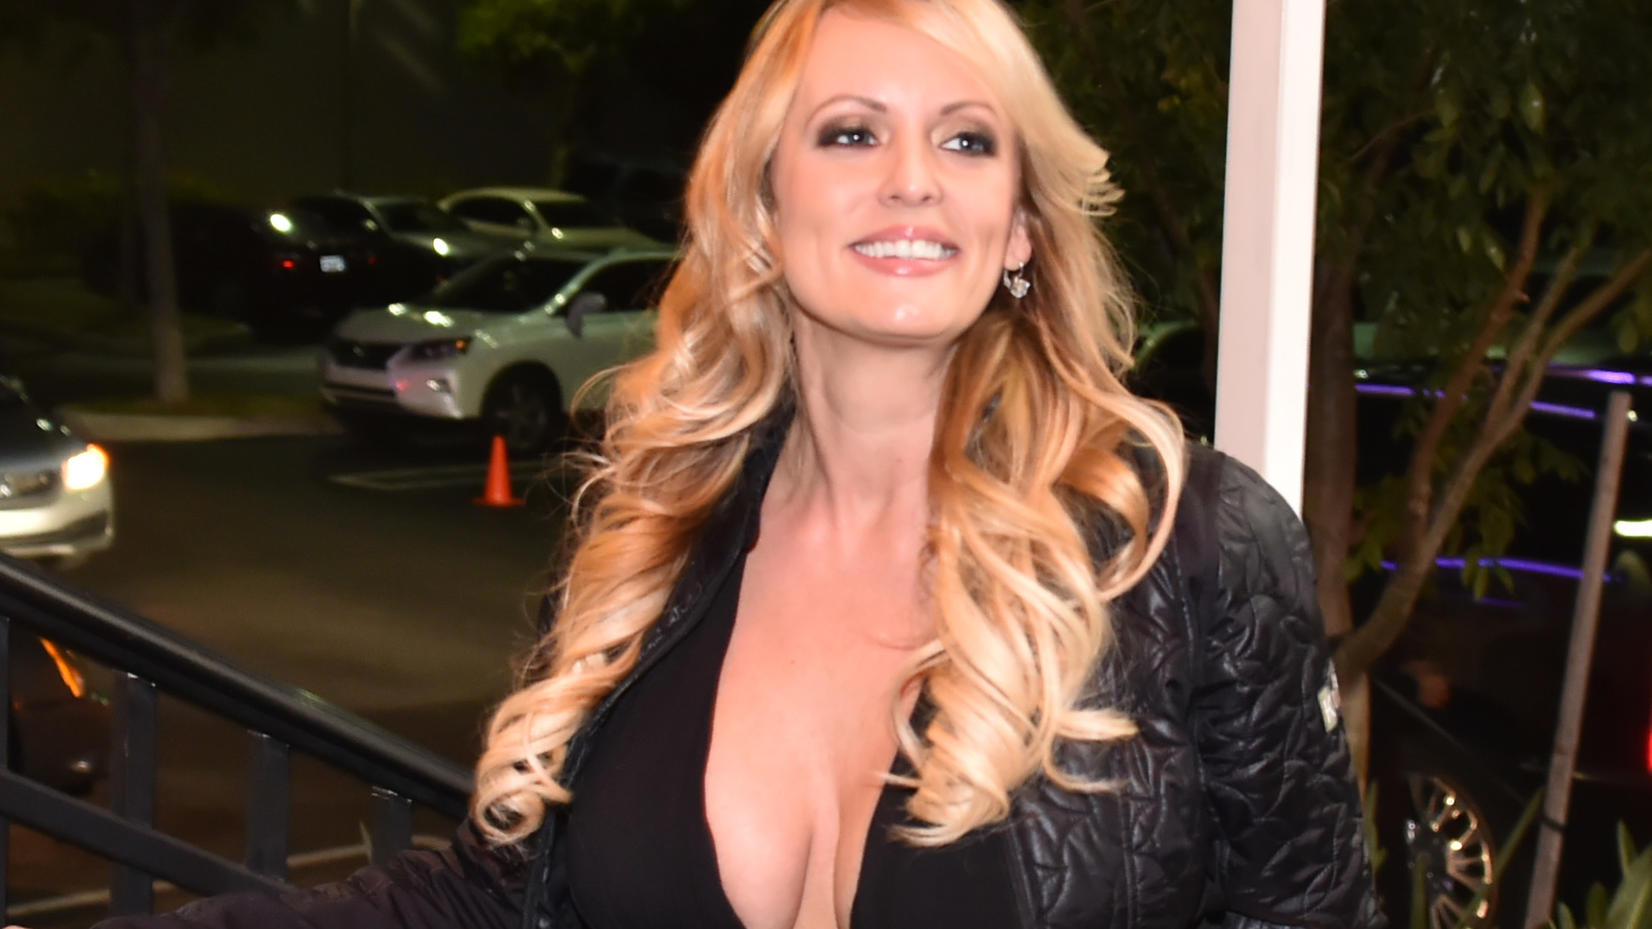 Stormy Daniel arrives at the Solid Gold, Pompano Beach, Florida.Porn star Stormy Daniels' lawsuit against Donald Trump.